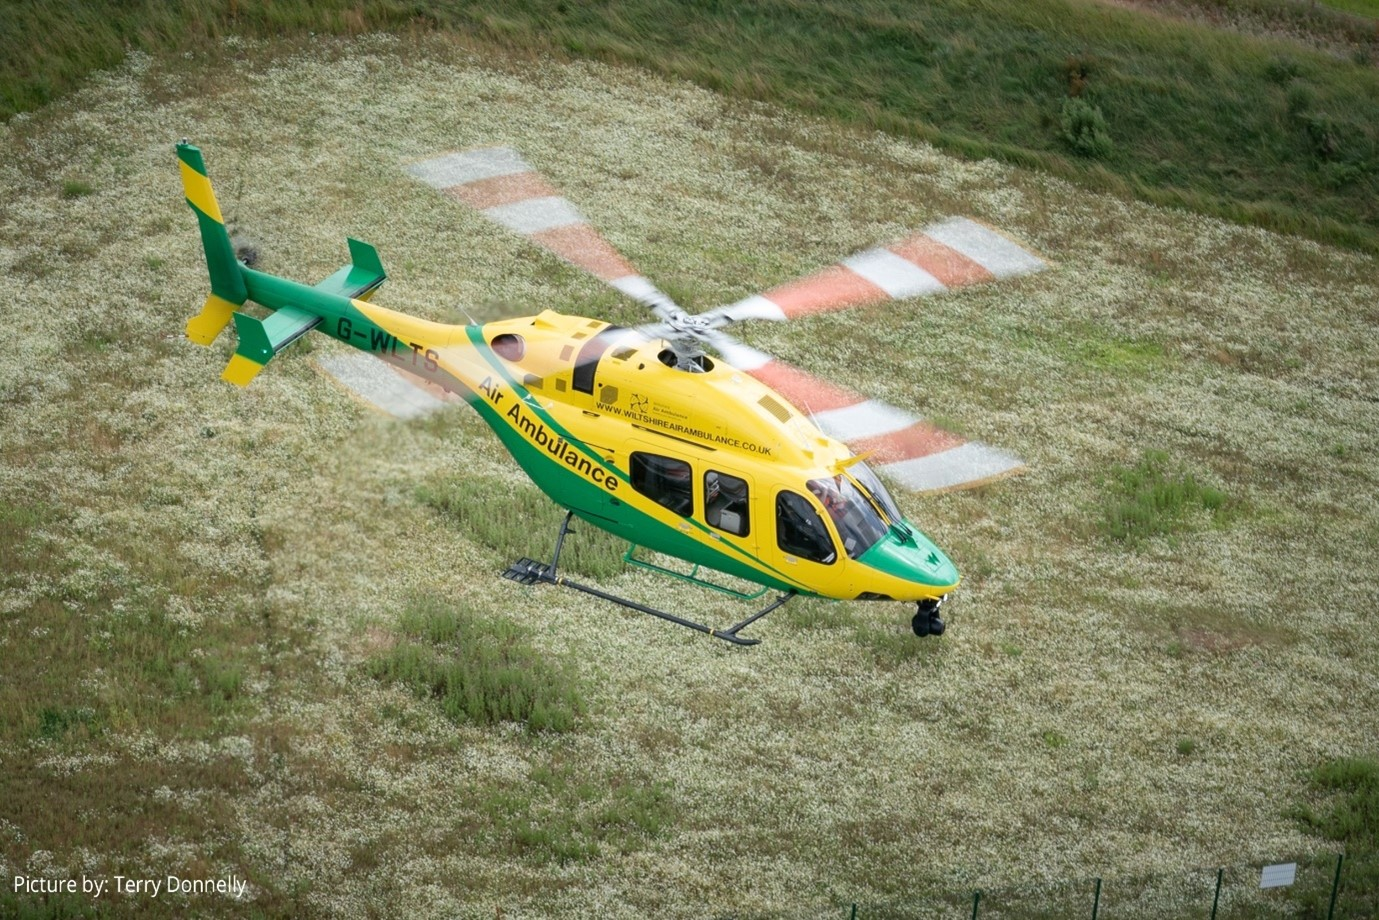 WAA air ambulance photo by Terry Donnelly